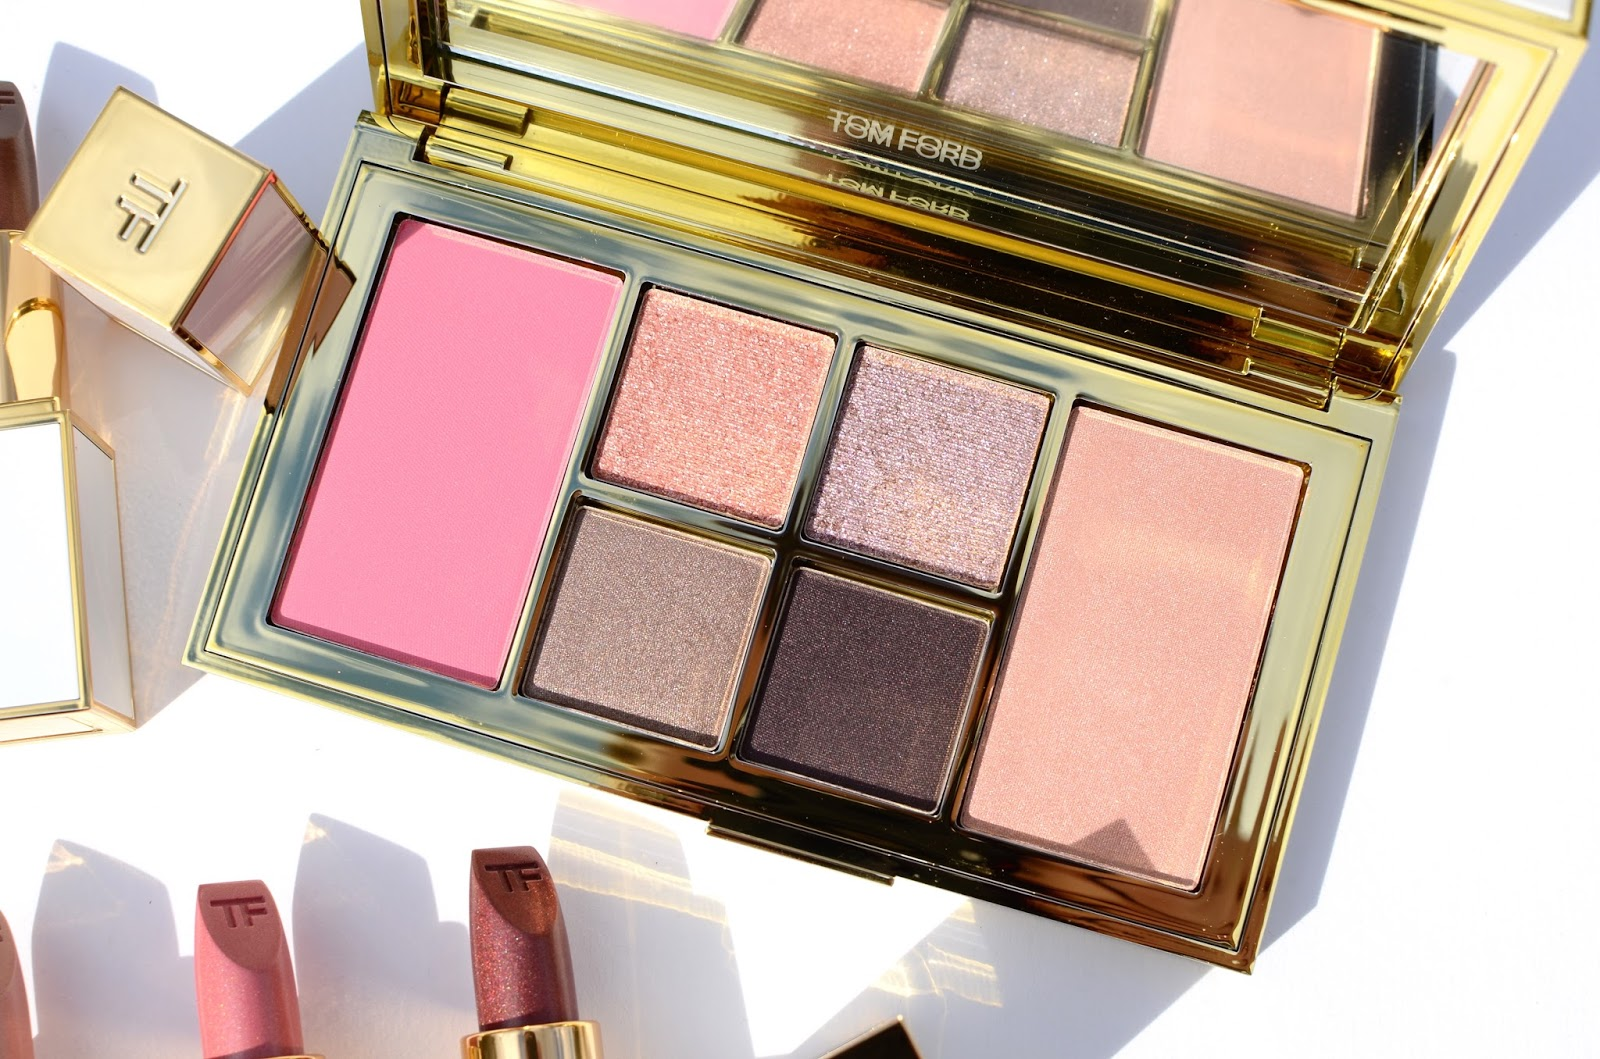 dress - Tom holiday ford makeup collection video